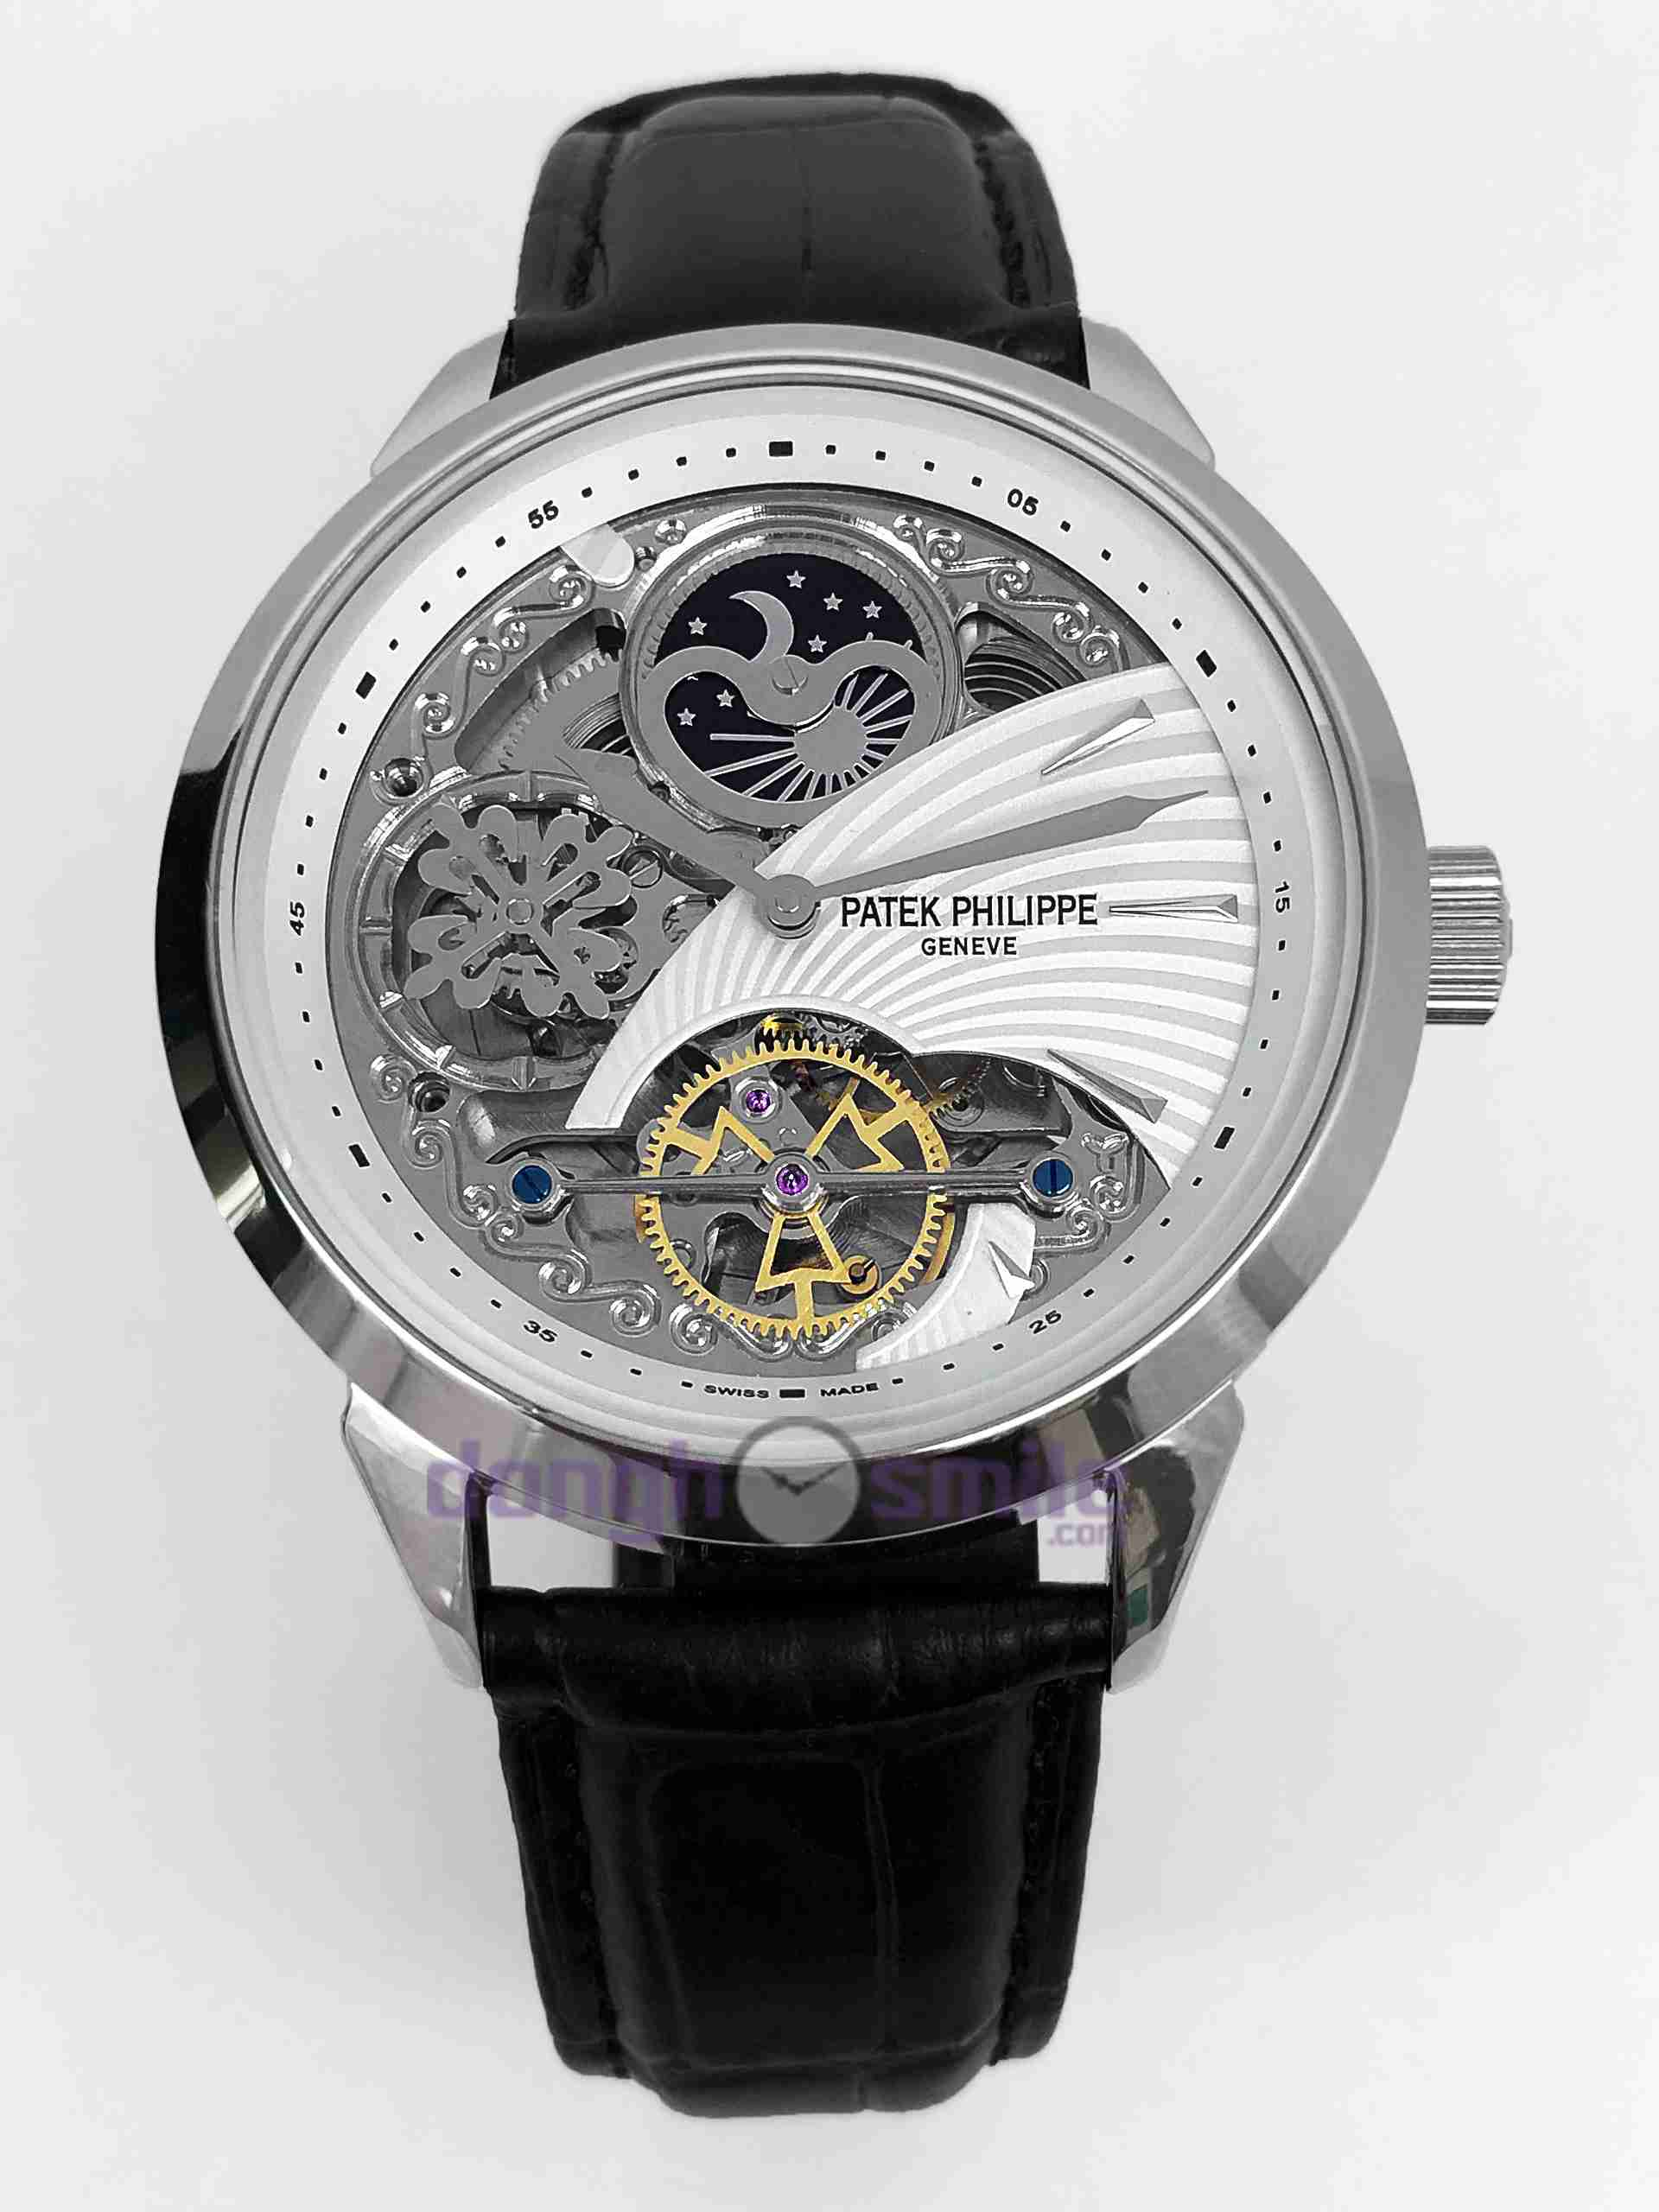 dong-ho-patek-philippe-geneve-gia-tot-a-pp114